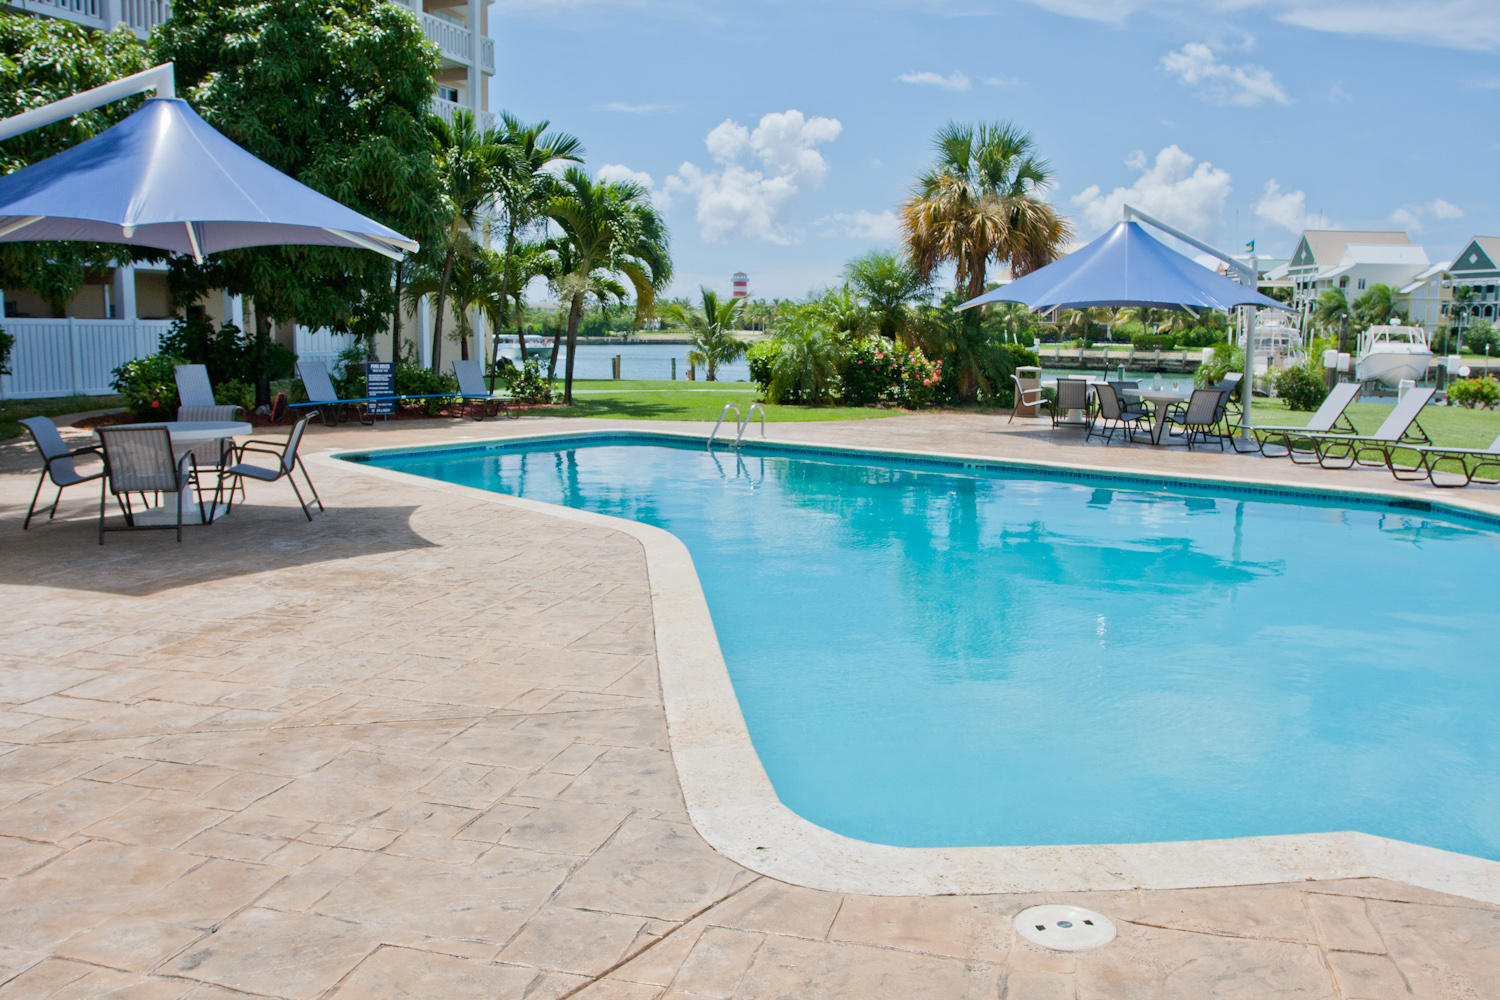 Co-op / Condo for Sale at Elegant Ocean View Apartment in Harbour House Towers Grand Bahama, Bahamas